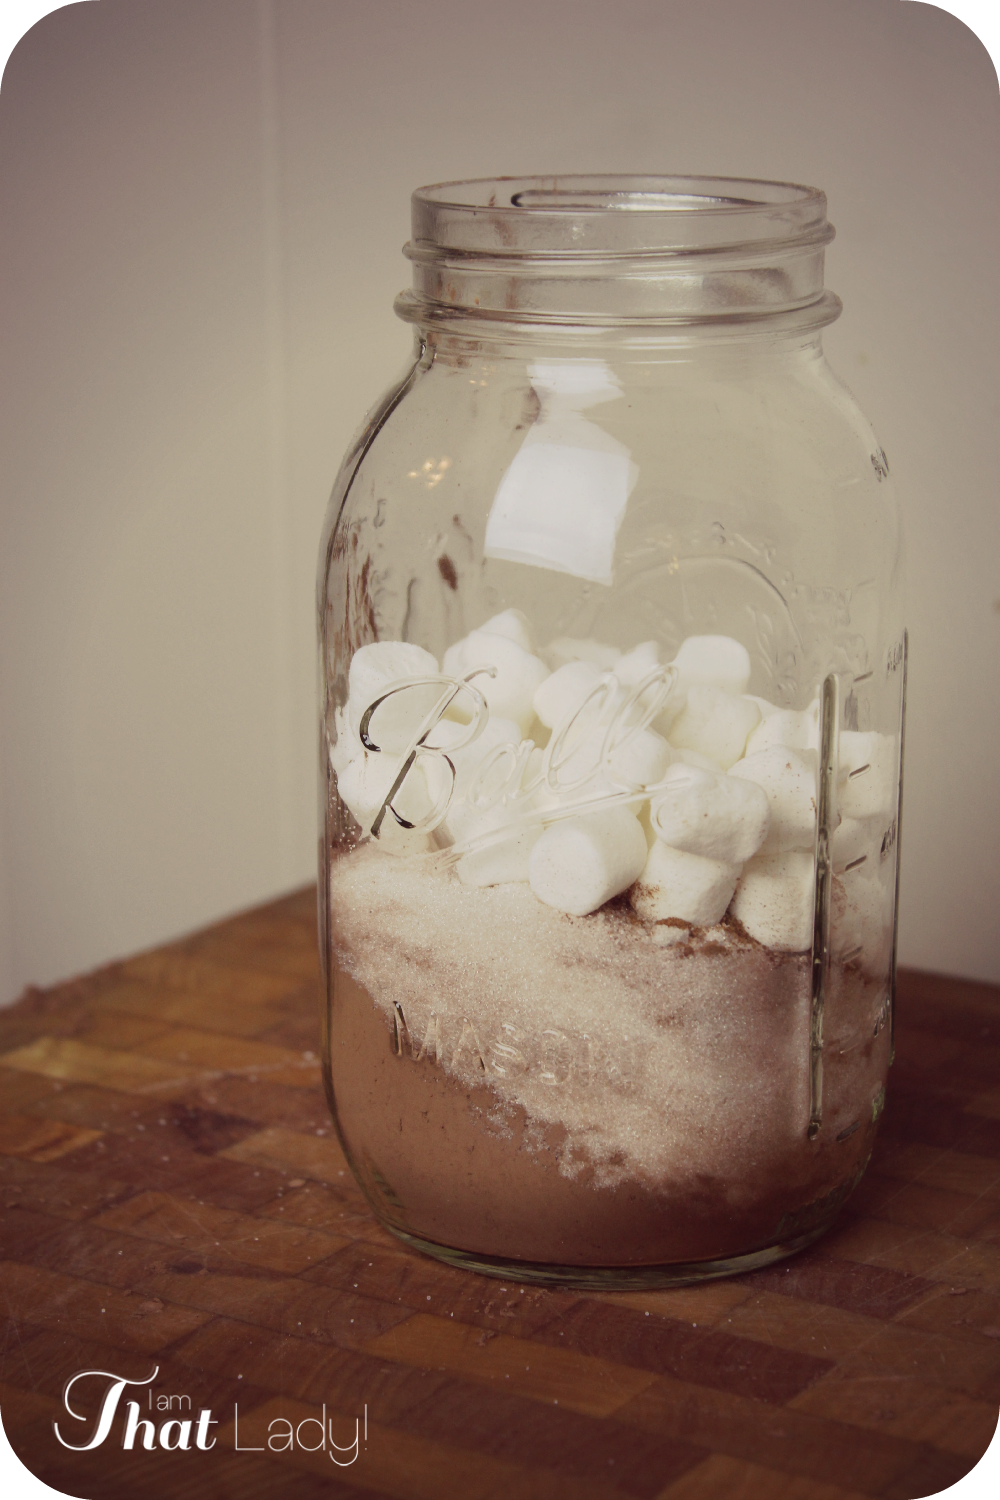 Are you looking for an inexpensive christmas gift?  Here is a great recipe for homemade Cinnamon hot Chocolate mix and how I can make 12 of these for under $20!